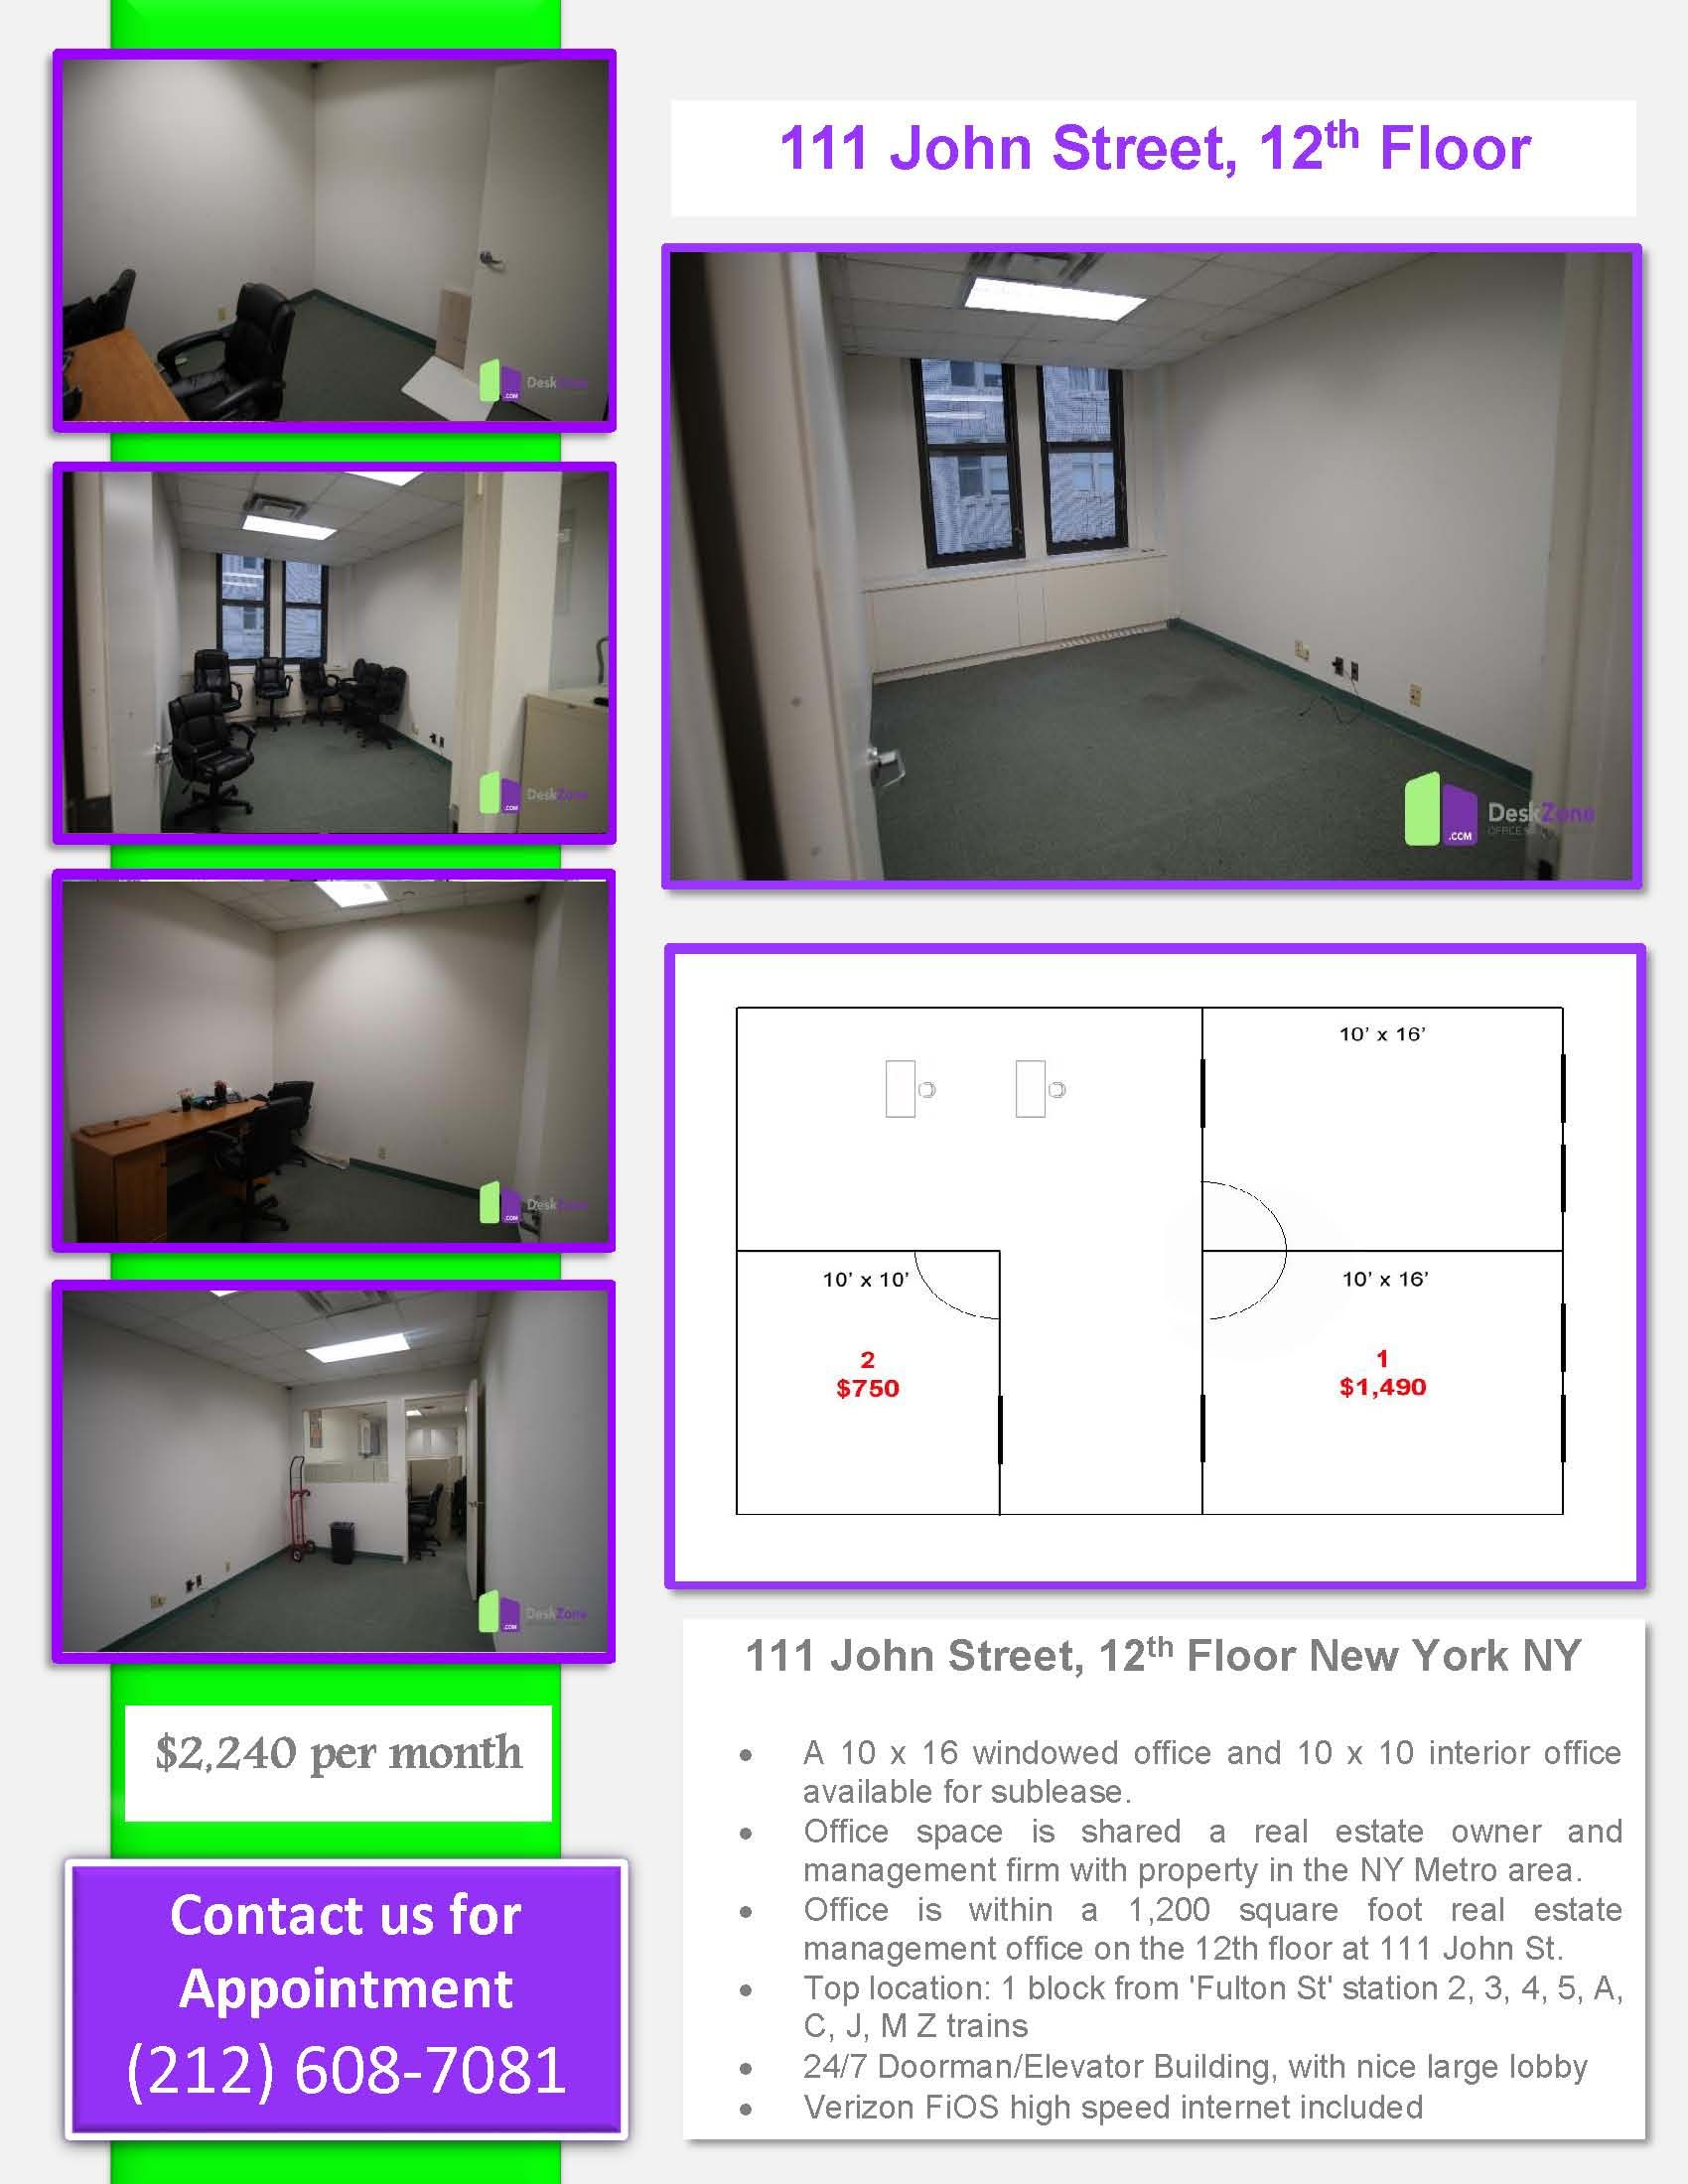 A 10 x 16 windowed office and 10 x 10 interior office available for sublease. Office space is shared a real estate owner and management firm with property in the NY Metro area. We invite all appropriate professionals to consider renting offices in this great working environment where the offices are available for rent on an immediate basis.  - Term 1-2.5 years - Office is within a 1,200 square foot real estate management office on the 12th floor at 111 John St.